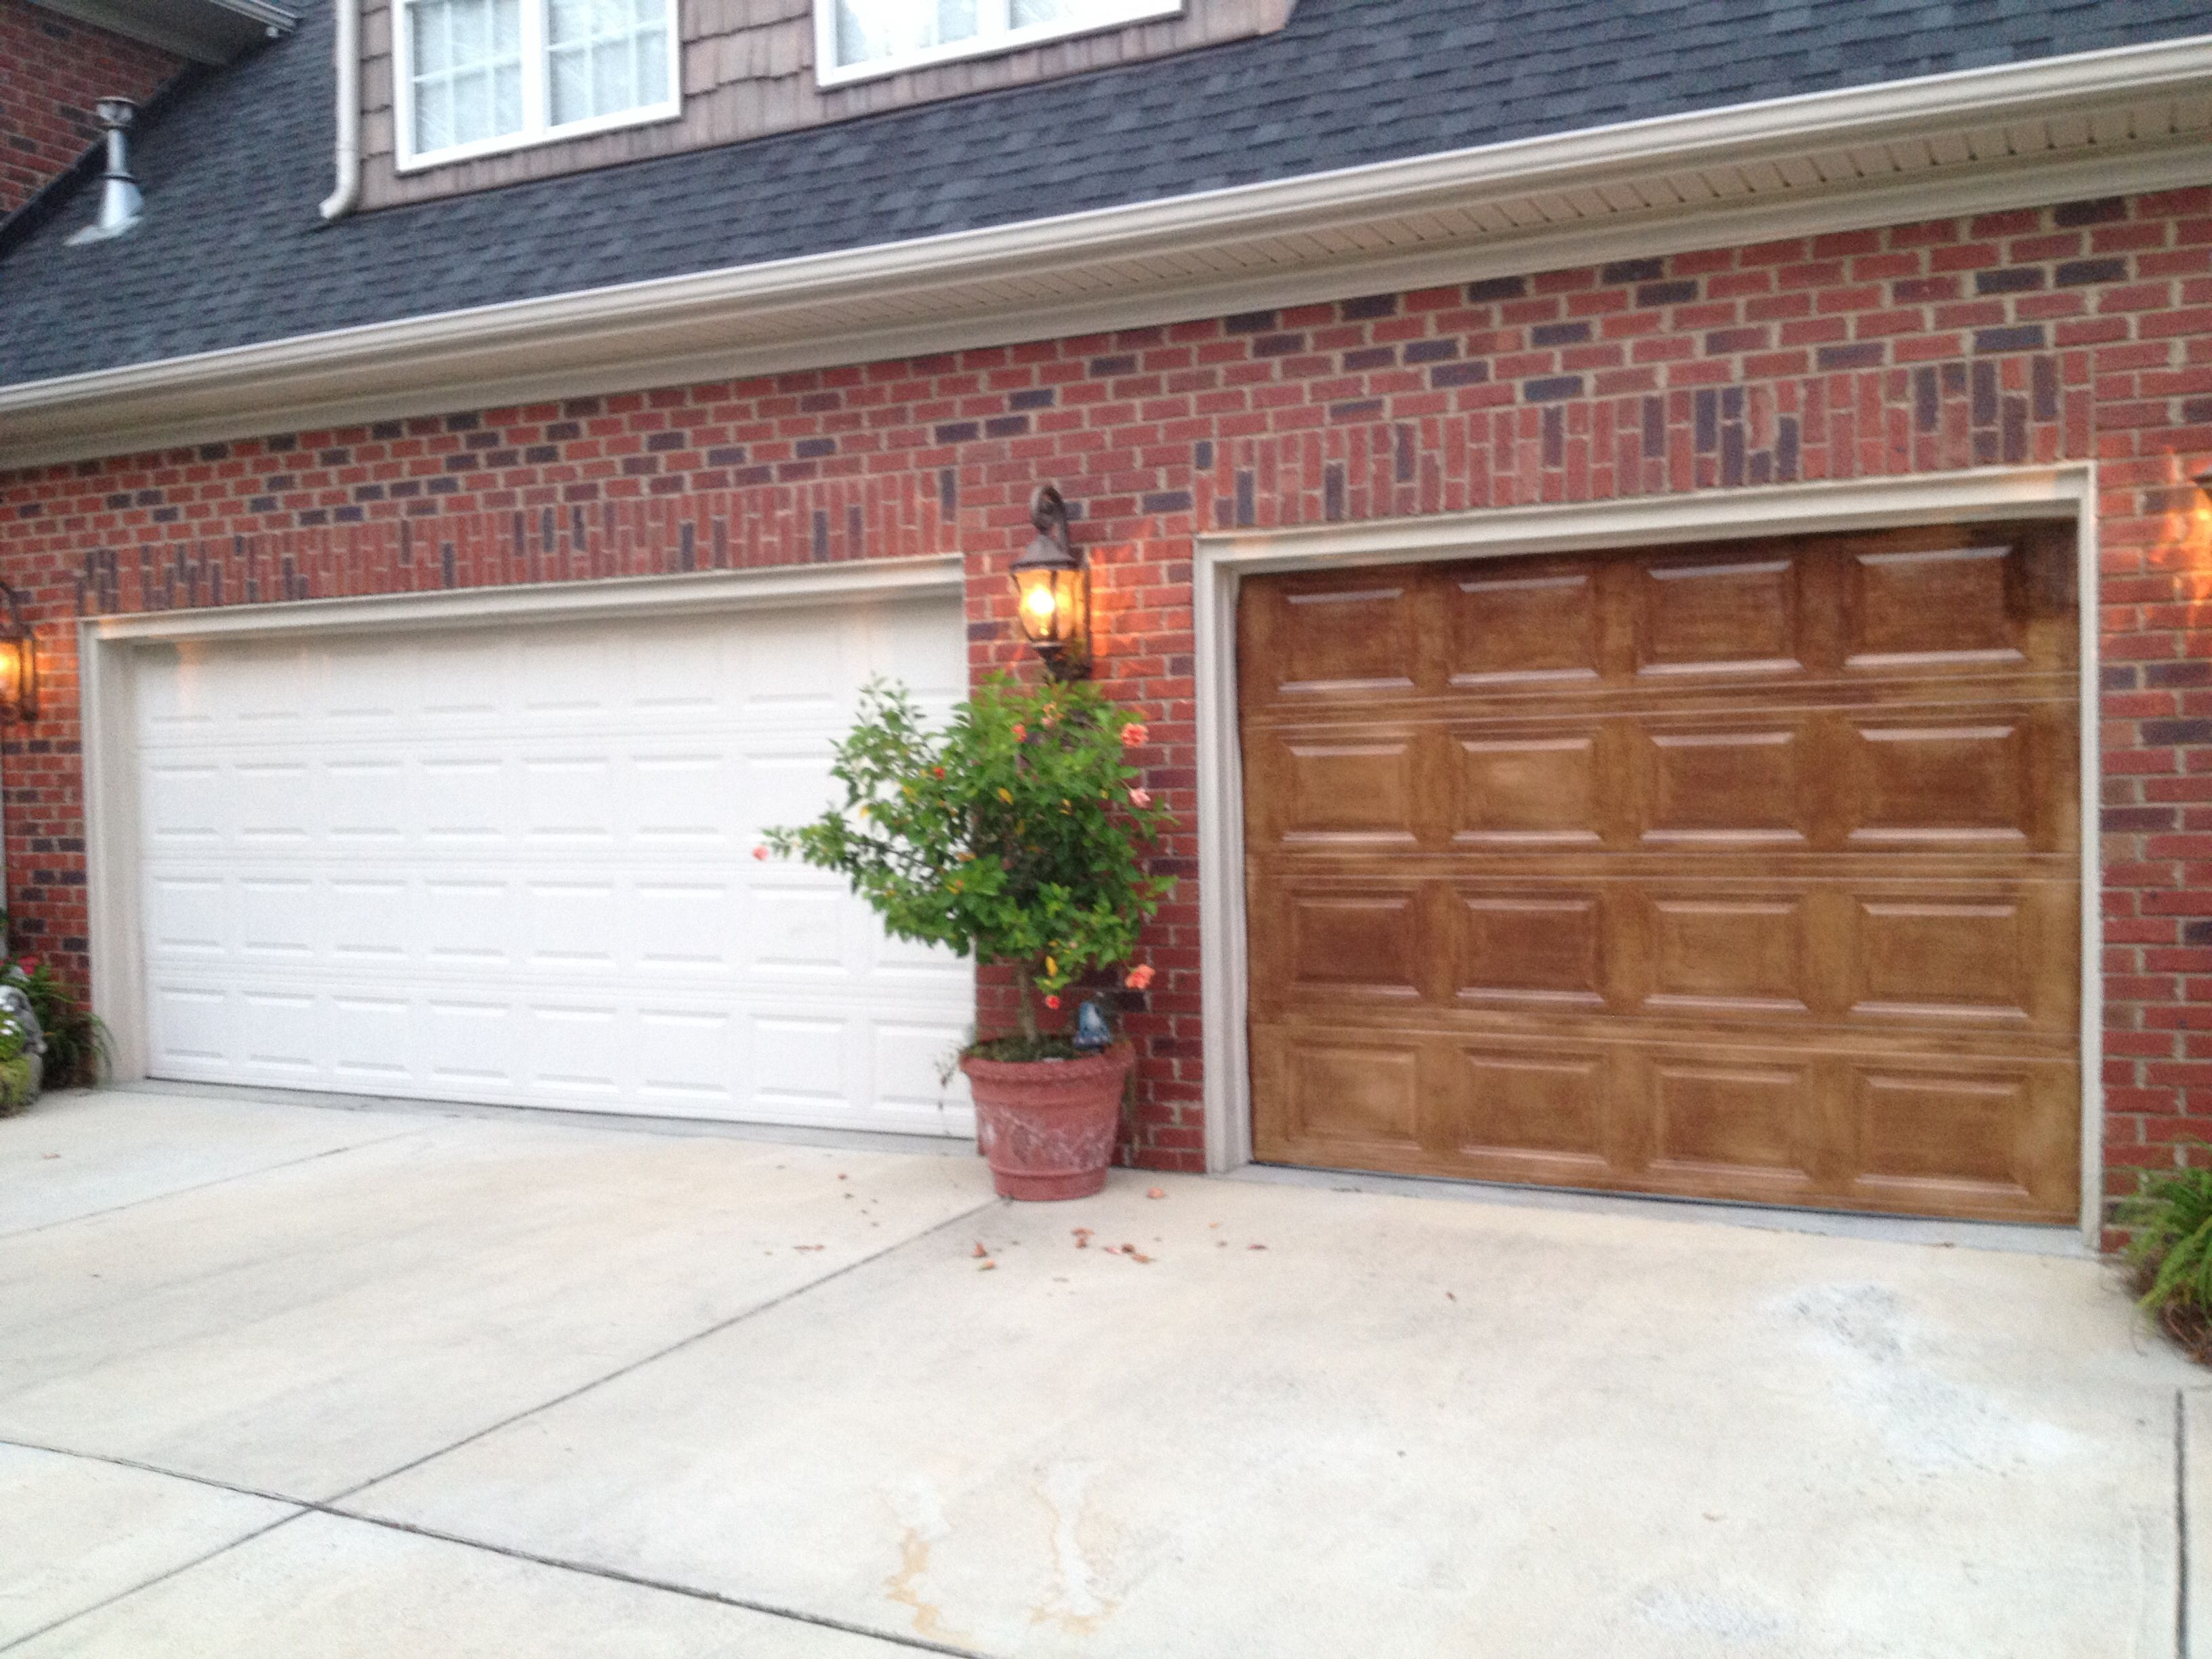 garage door color ideas for orangebrick house - Gel stained garage doors to look like wood